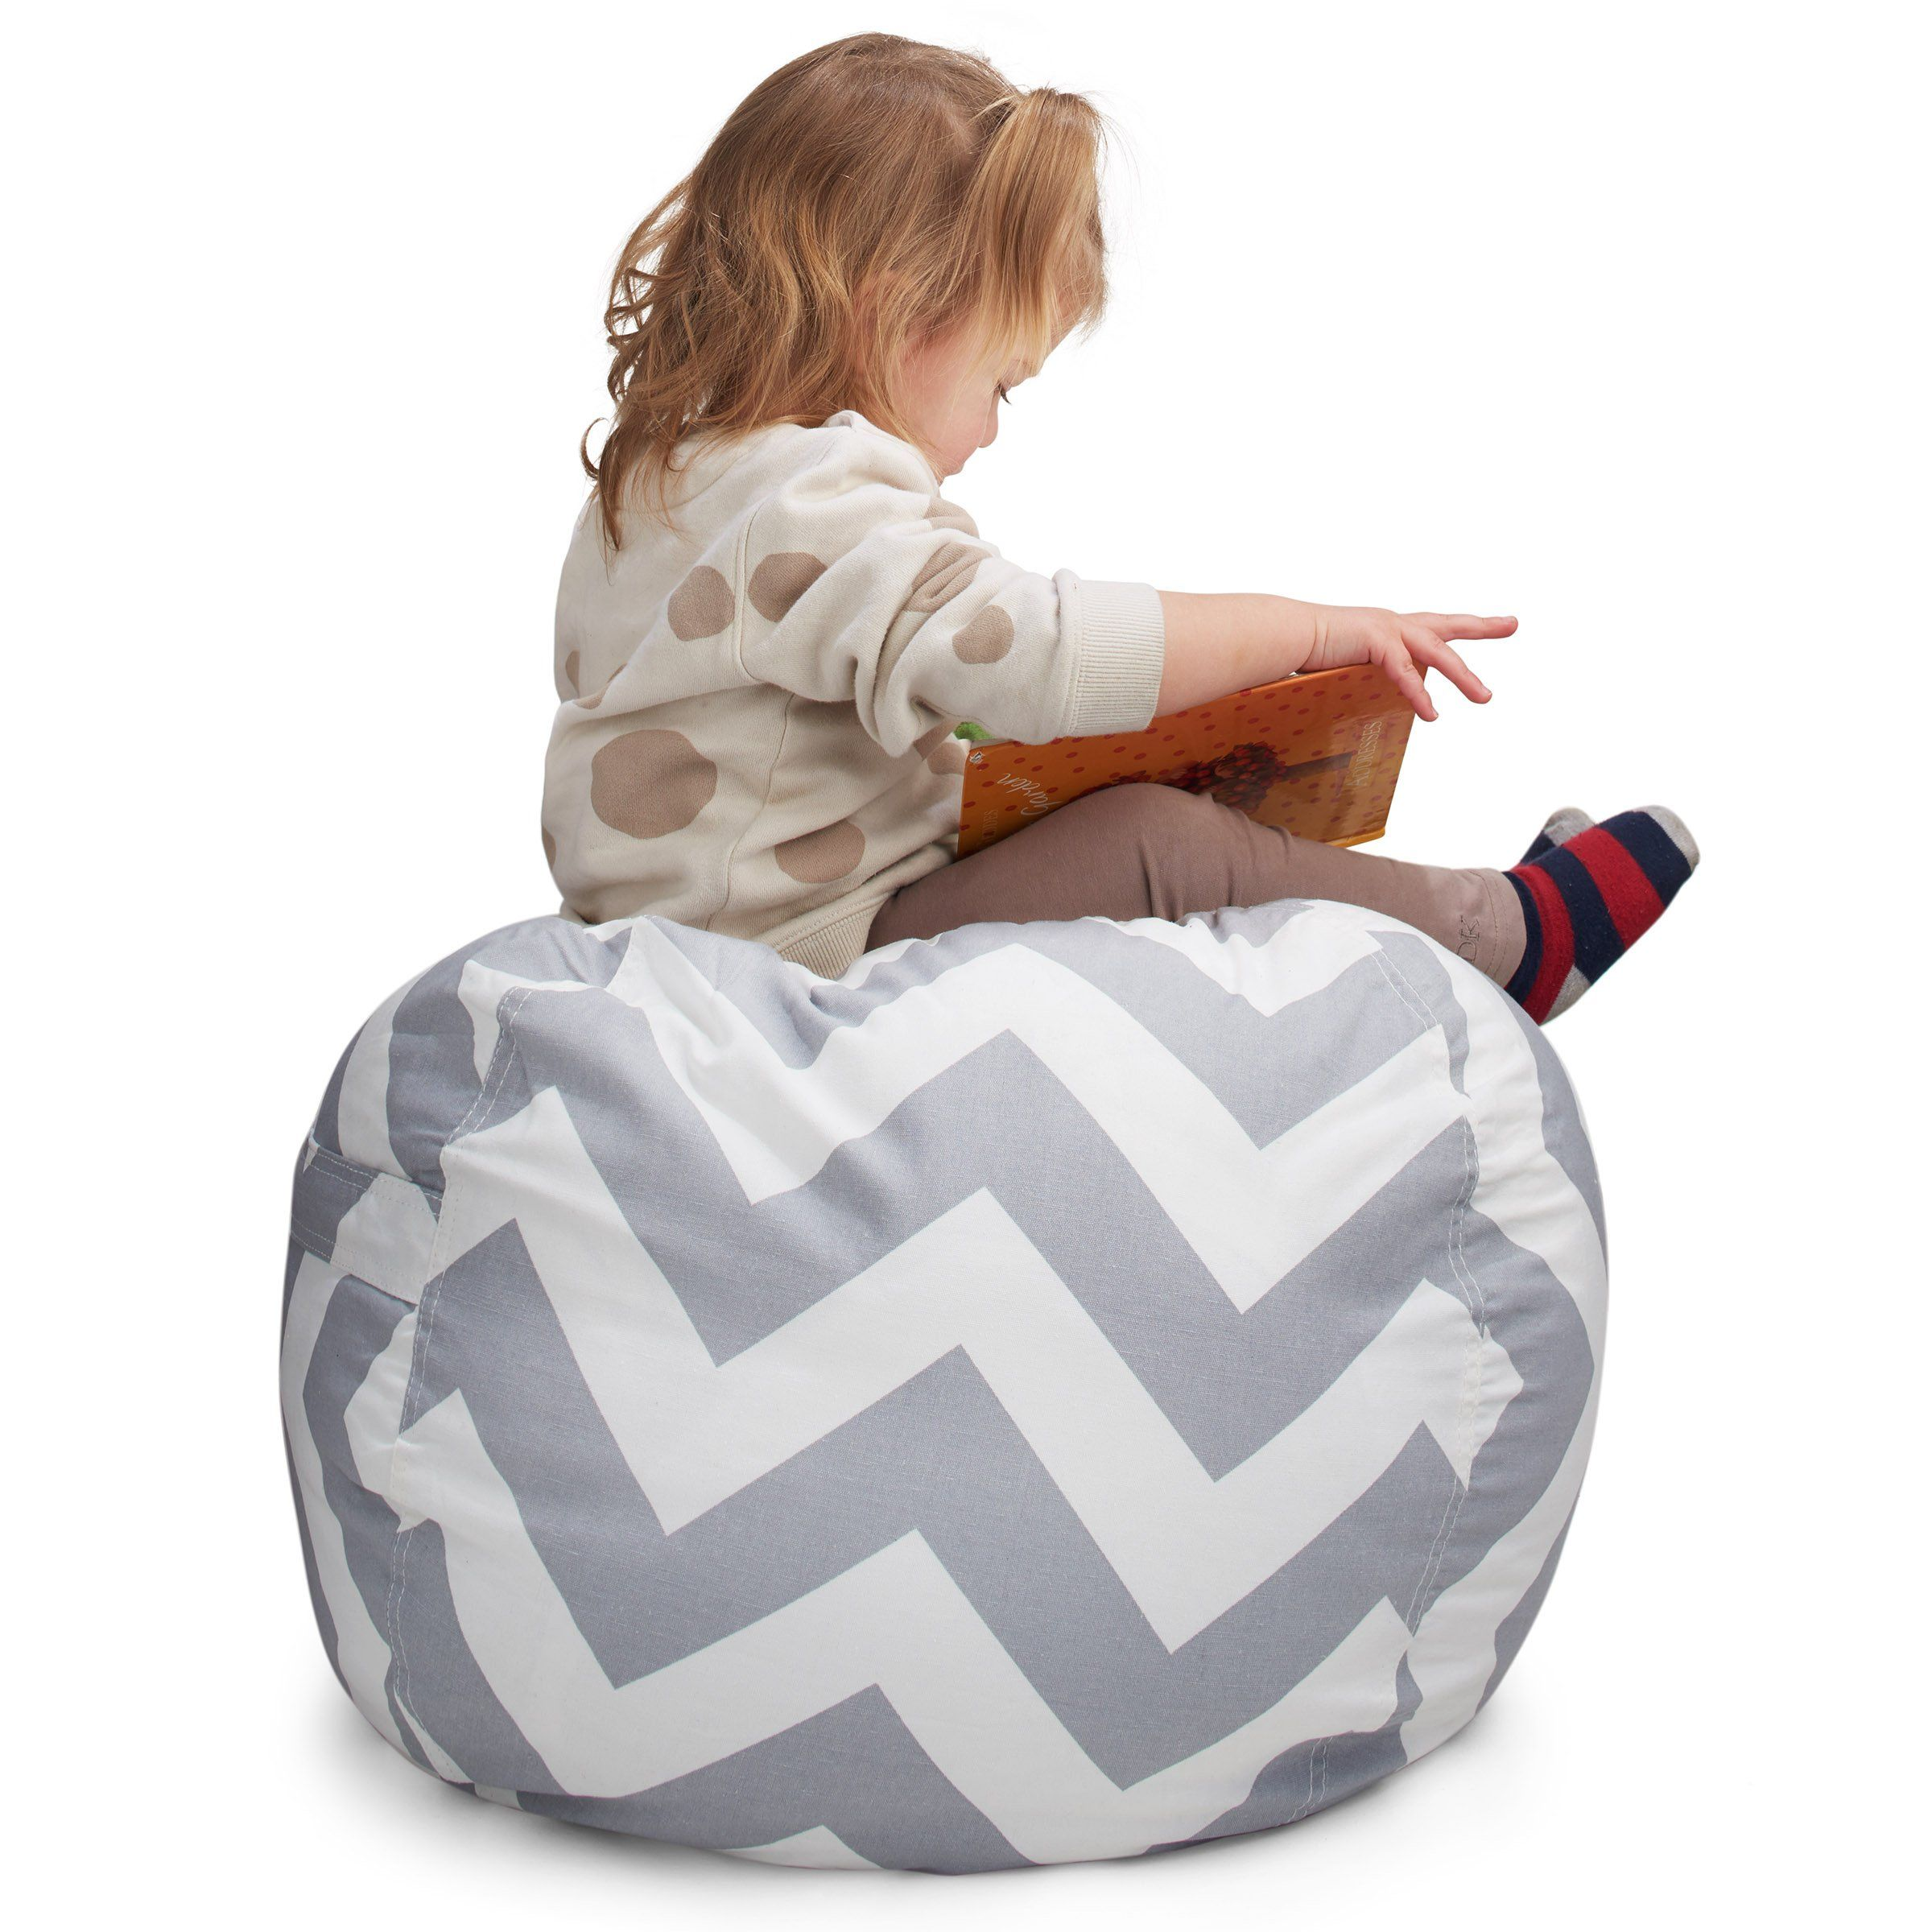 Smart Additions Stuffed Animal Storage Bean Bag Chair 2 In 1 Stuffed Toy Storage Kids Bean Bag Brigh Bean Bag Chair Kids Bean Bags Stuffed Animal Storage